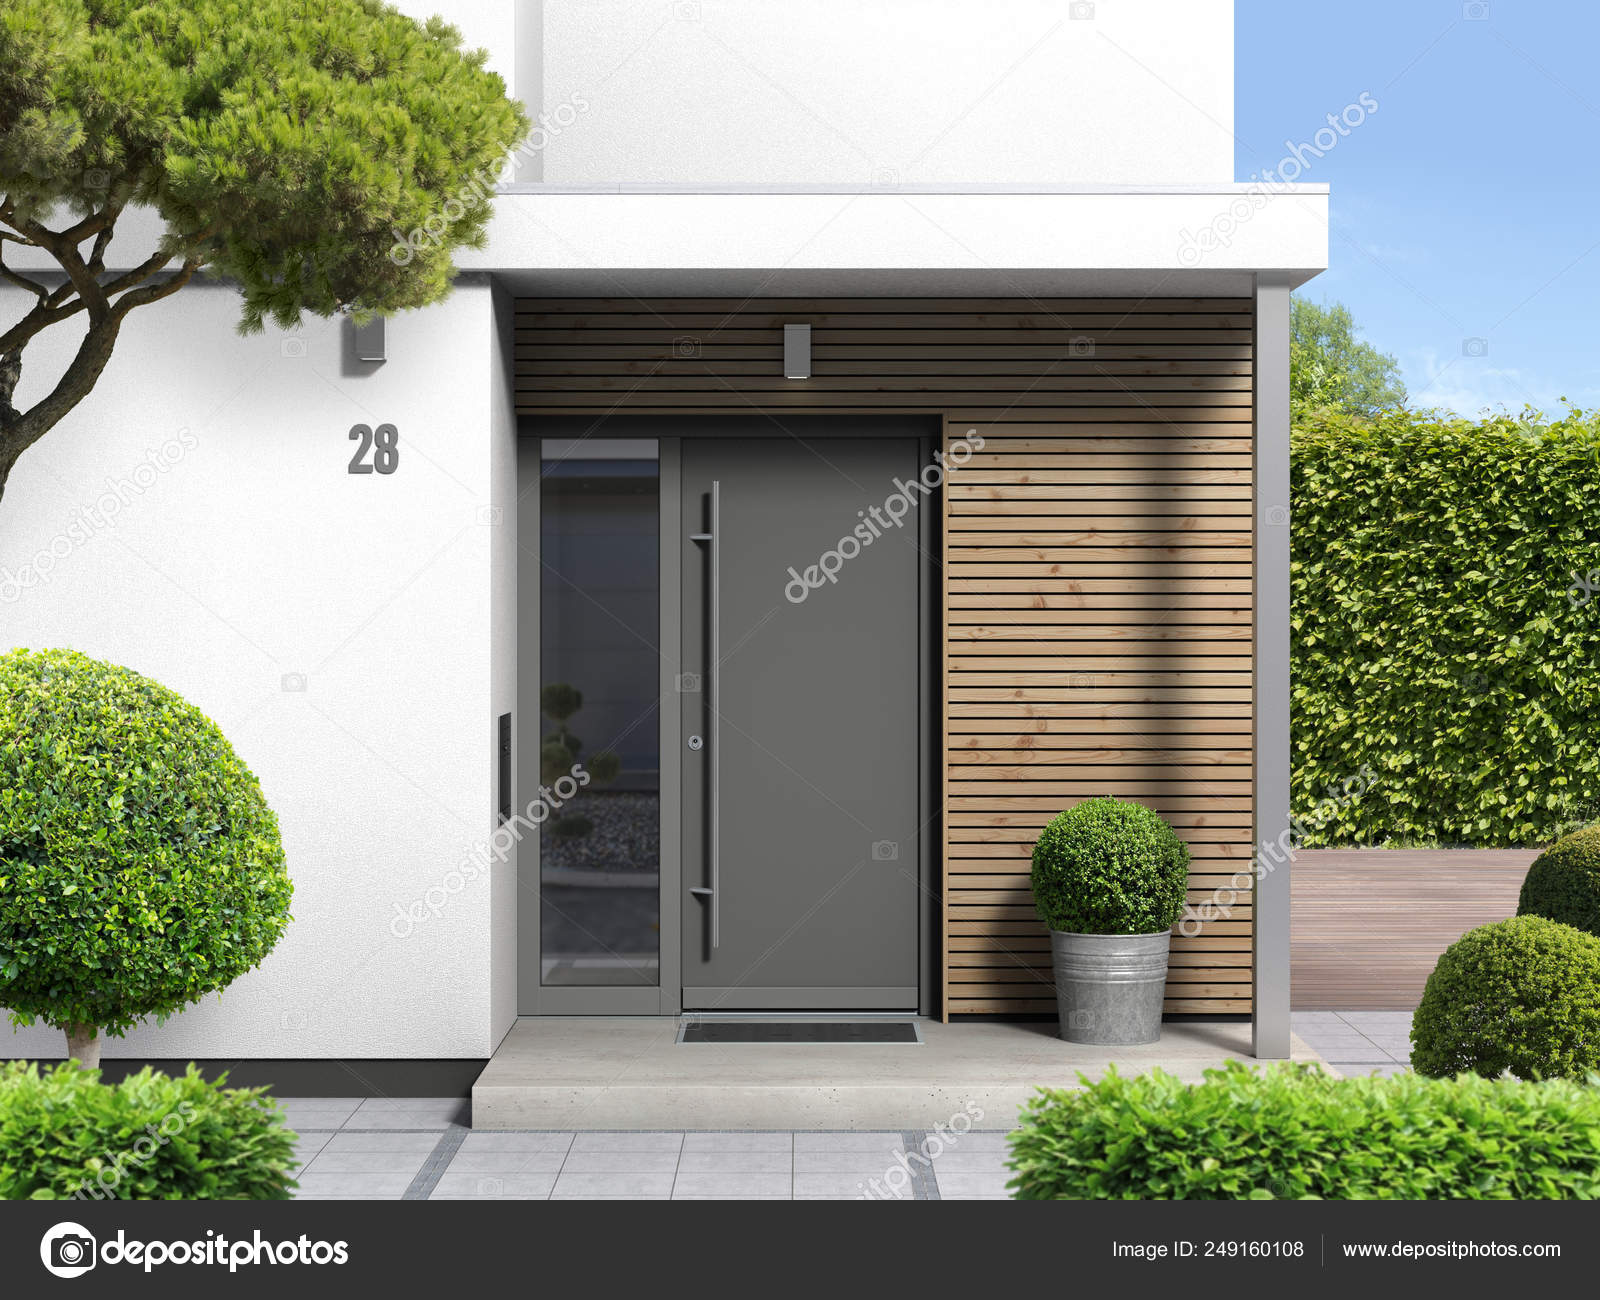 Images Modern Bungalow Modern Bungalow Home Entrnne Front Dir Rendering Stock Photo C Numismarty 249160108